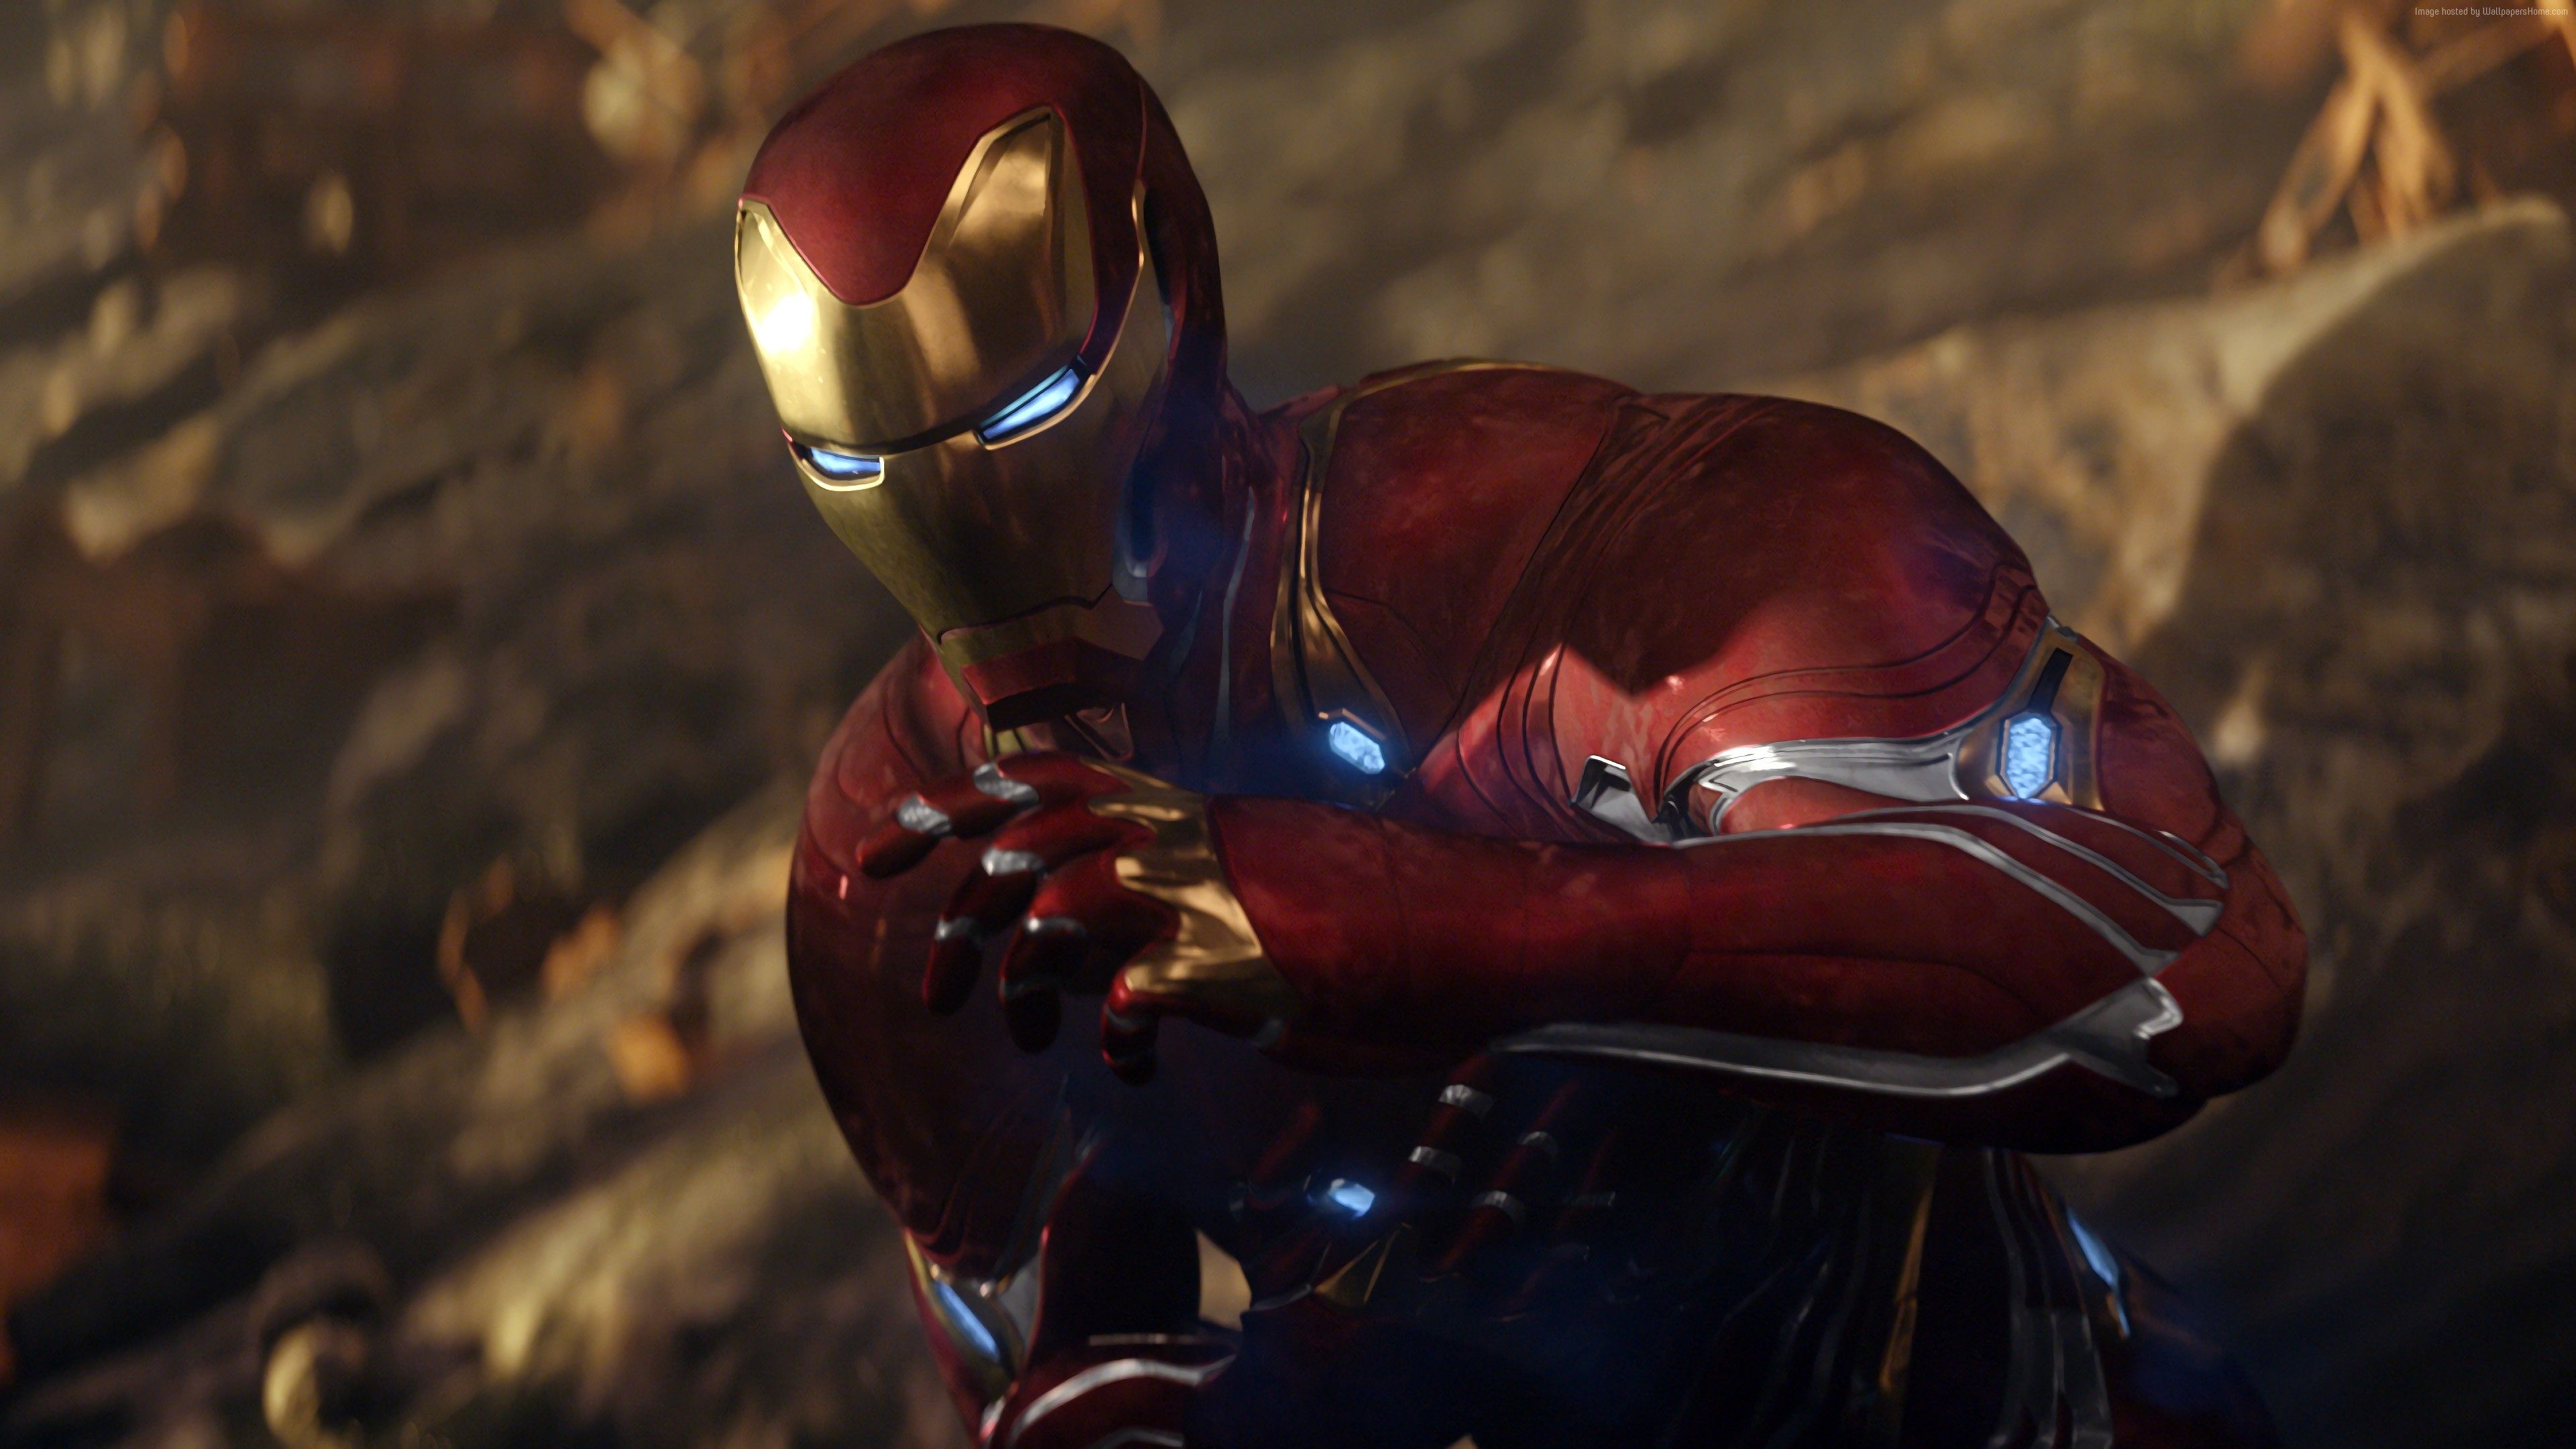 Wallpapers Avengers: Infinity War, Iron Man, 4k, Movies